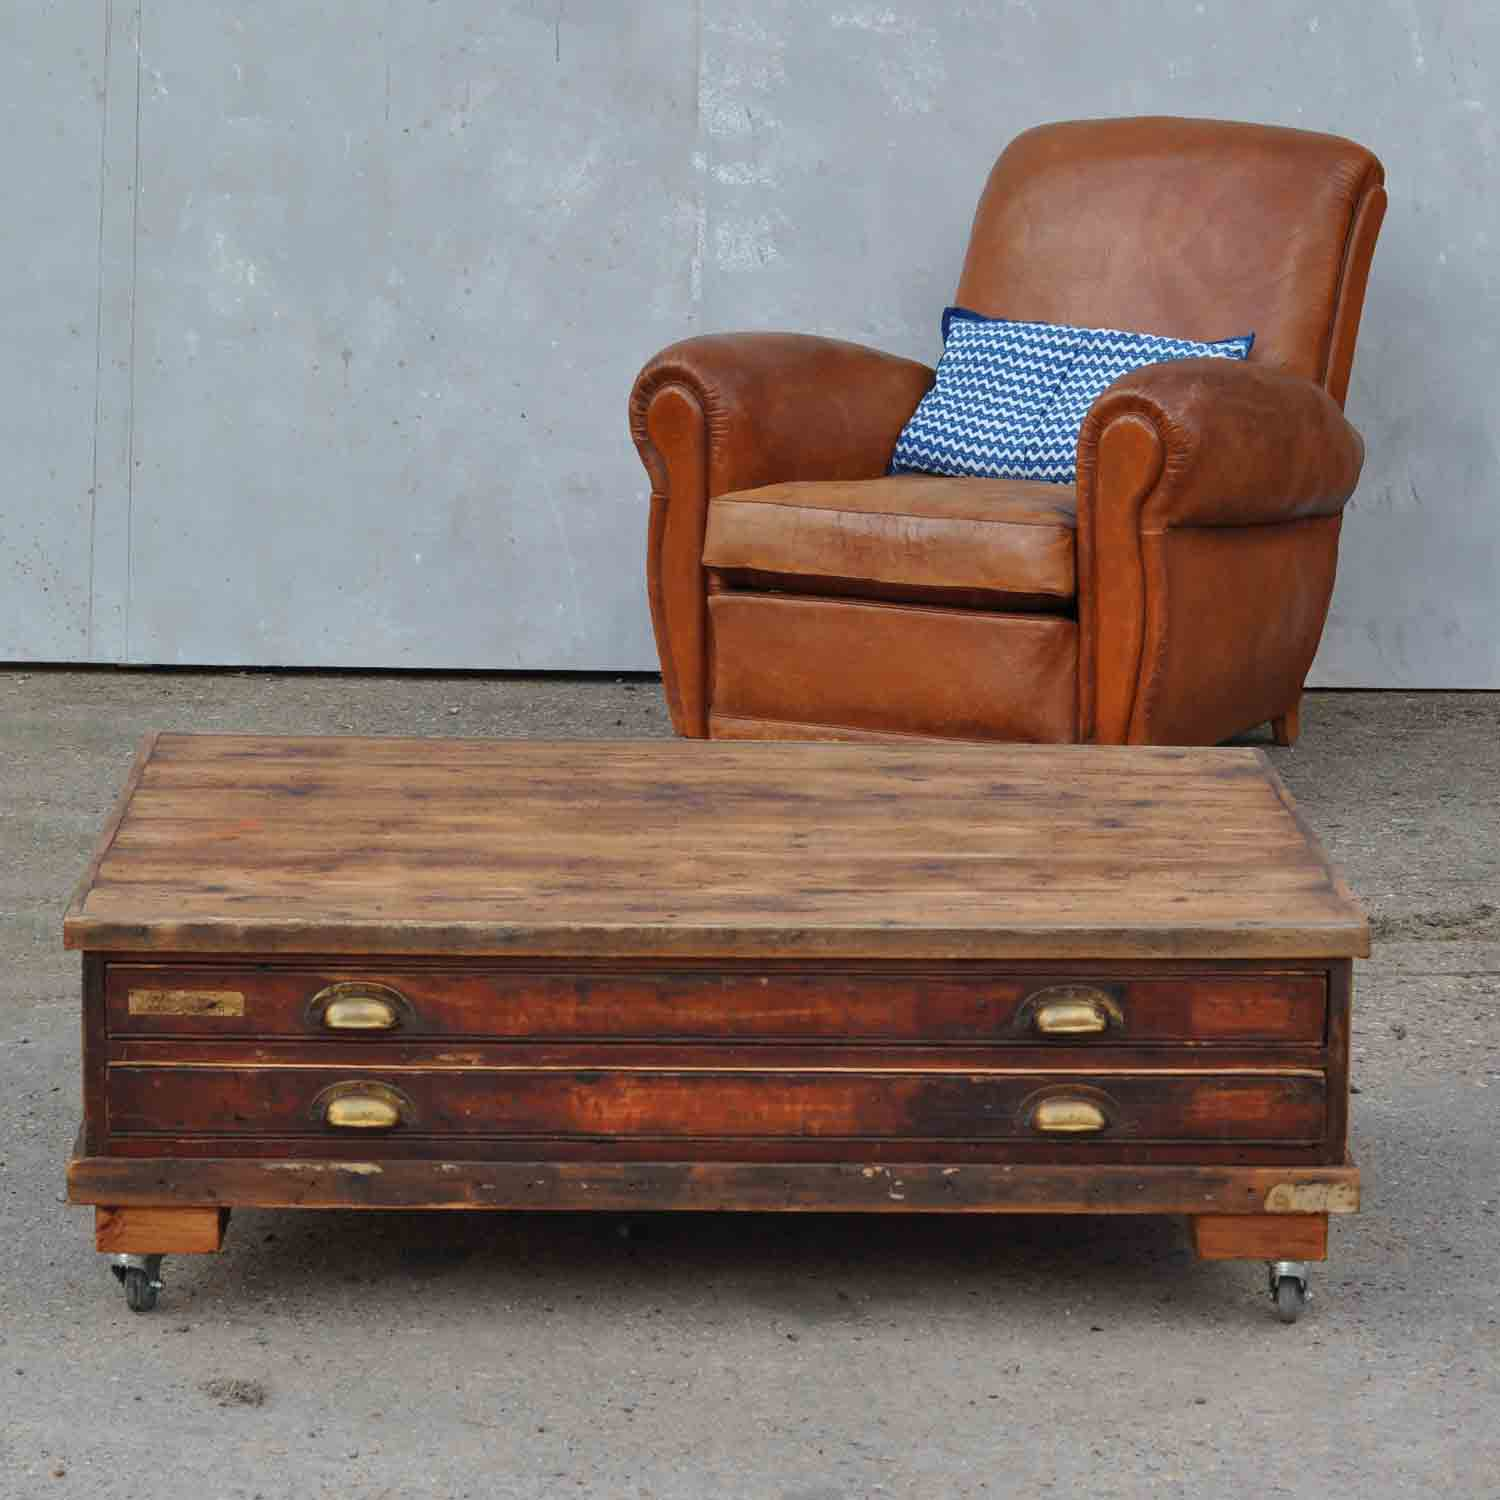 Vintage Plan Chest Coffee Table On Wheels